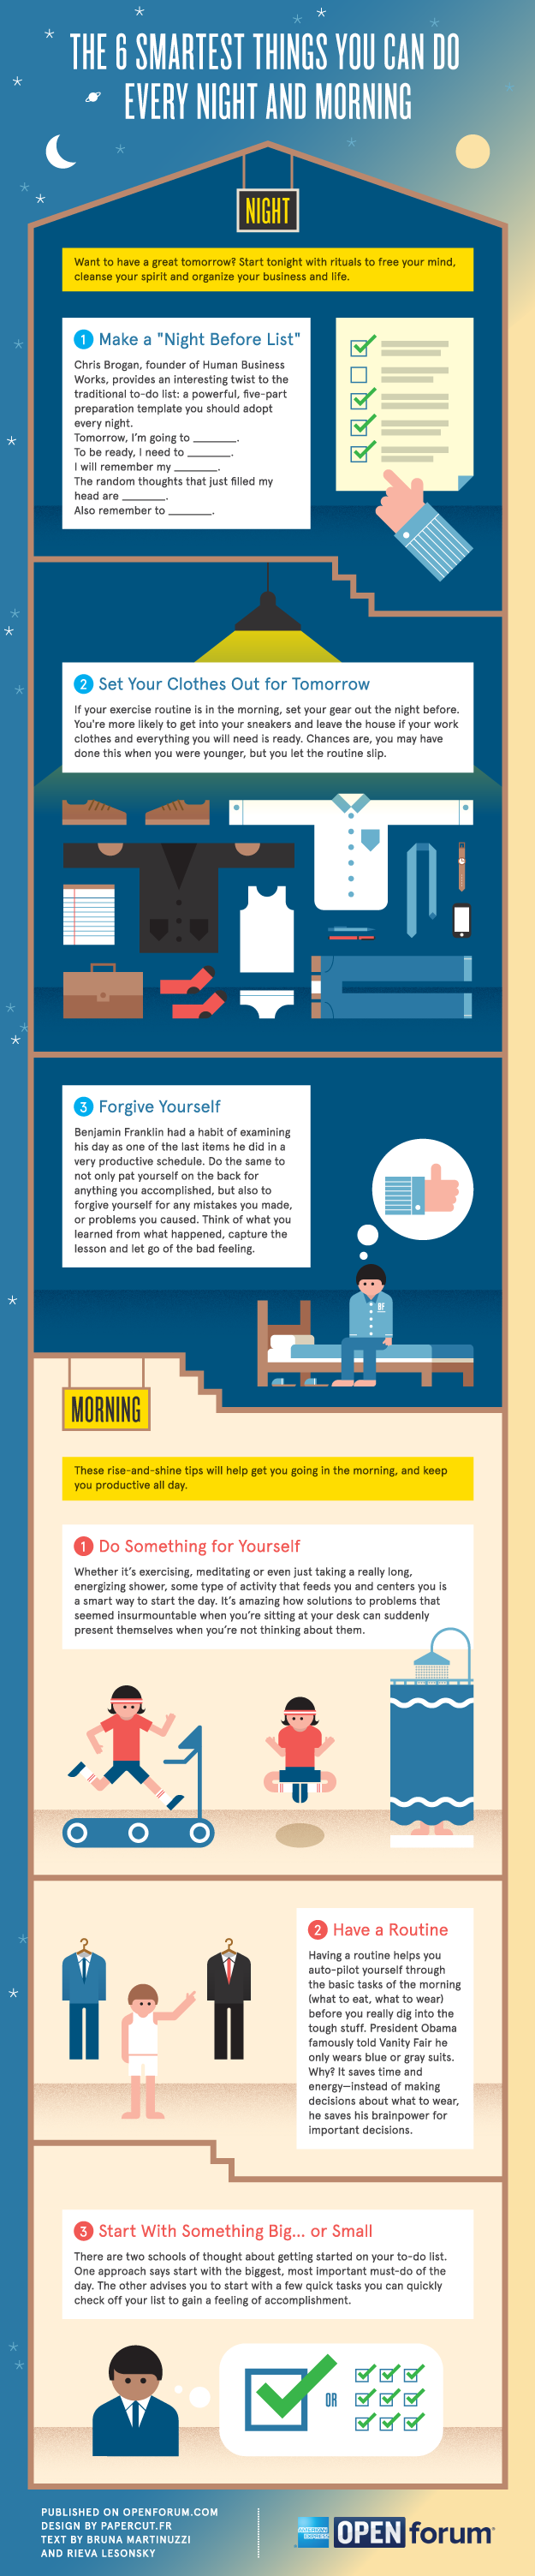 The 6 Smartest Things You Can Do Every Night and Morning